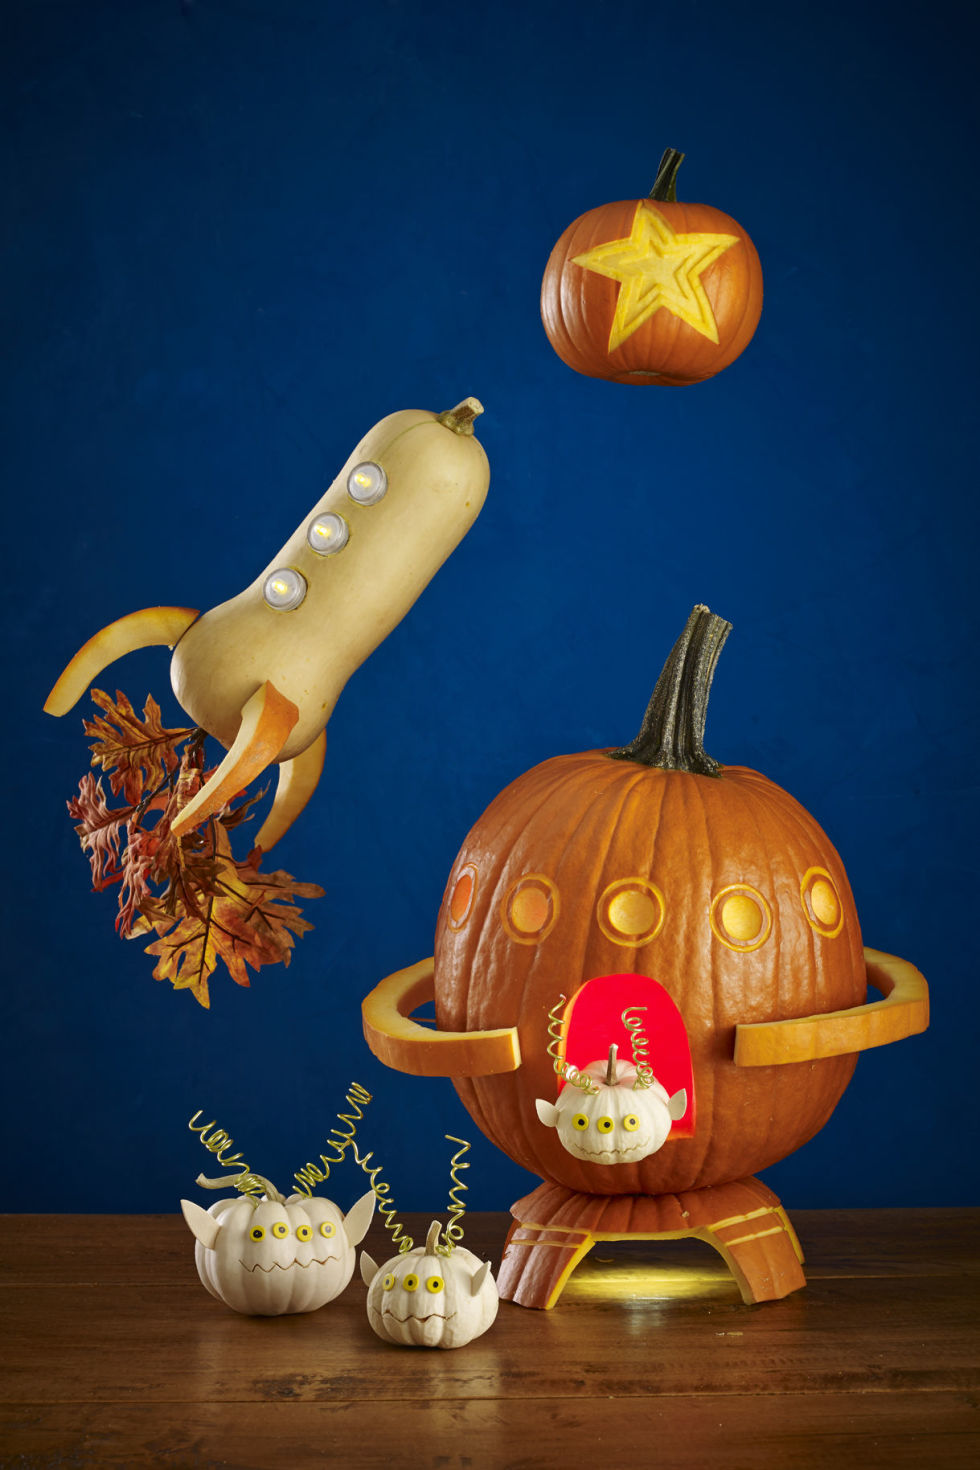 65 best pumpkin carving ideas halloween 2017 creative jack o lantern designs - Pumpkin Halloween Ideas